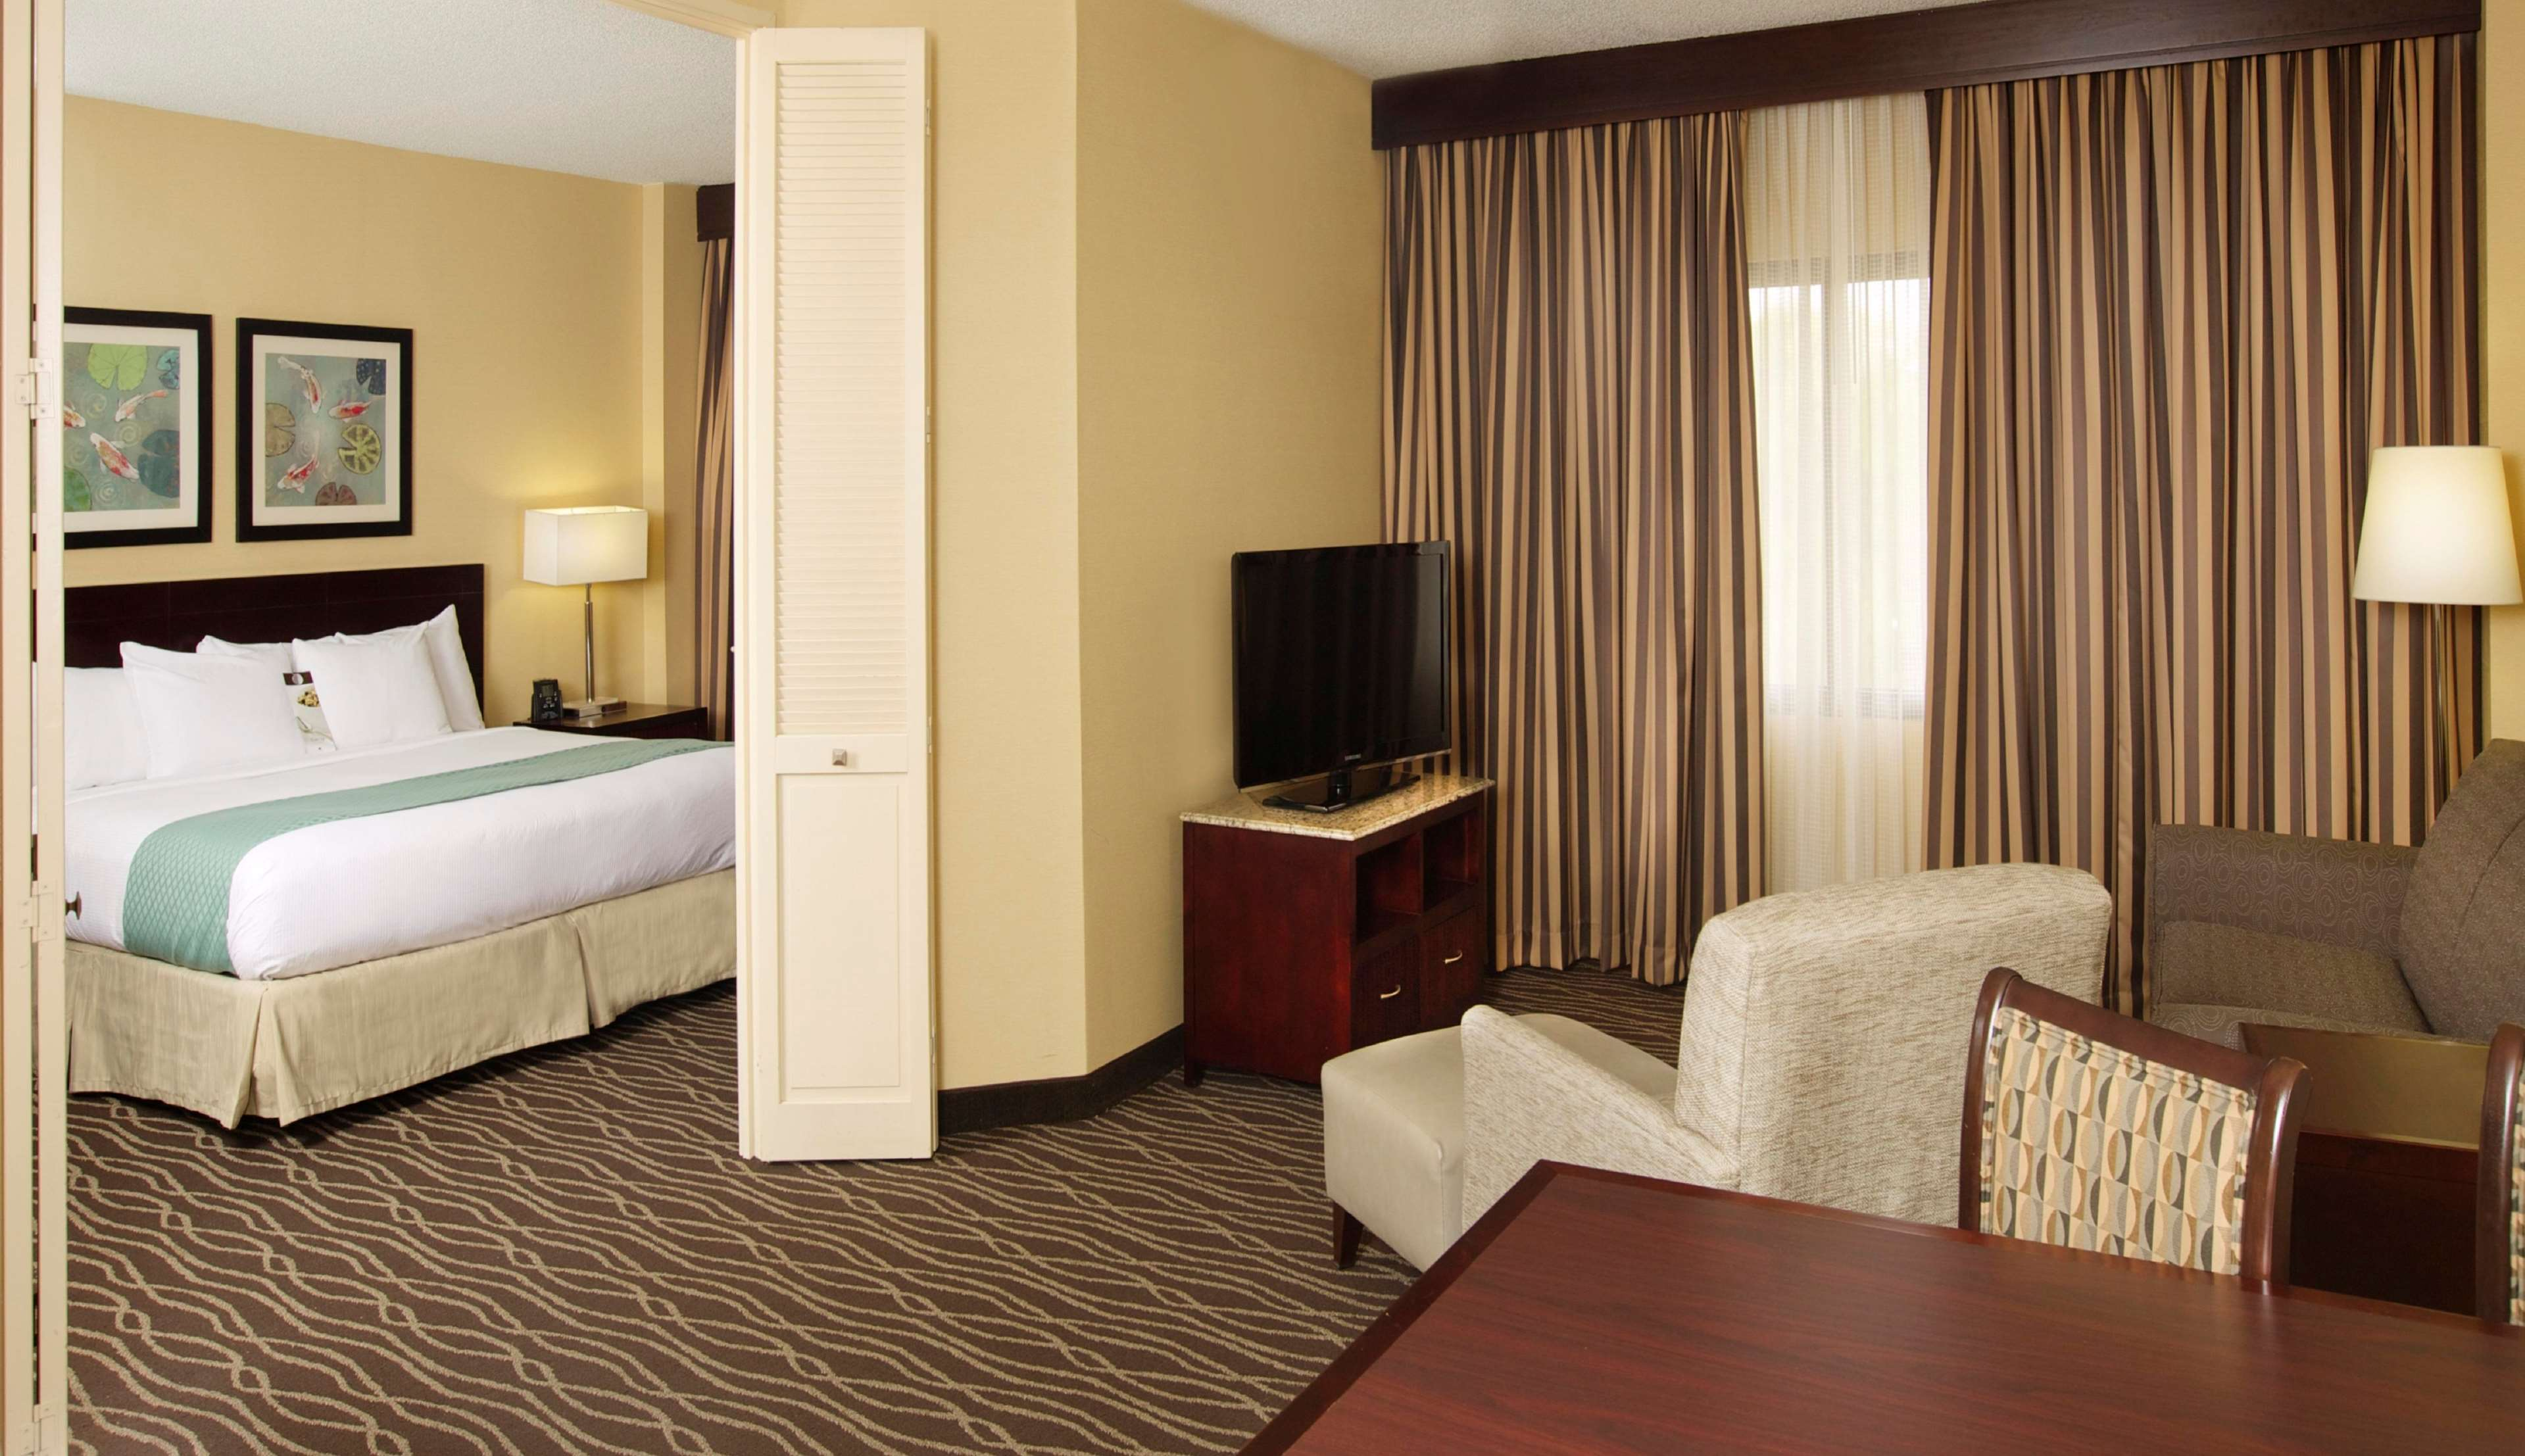 DoubleTree Suites by Hilton Hotel Raleigh - Durham image 18